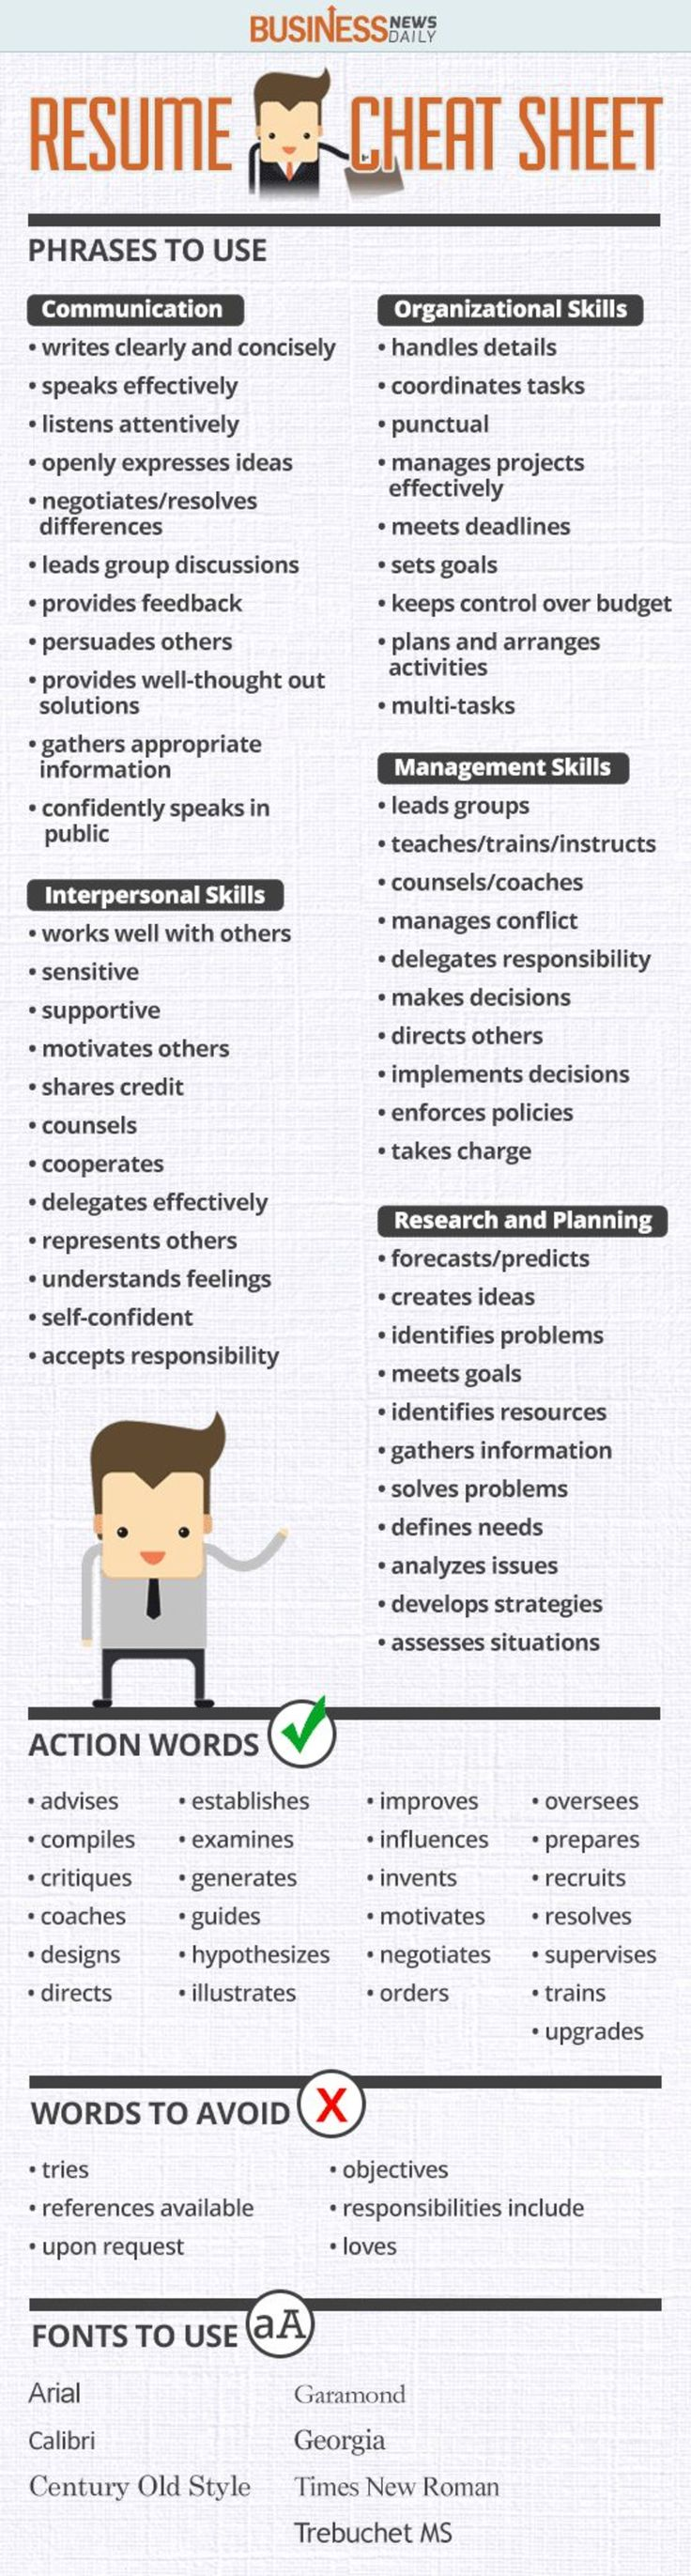 25 unique perfect resume ideas on pinterest job search resume